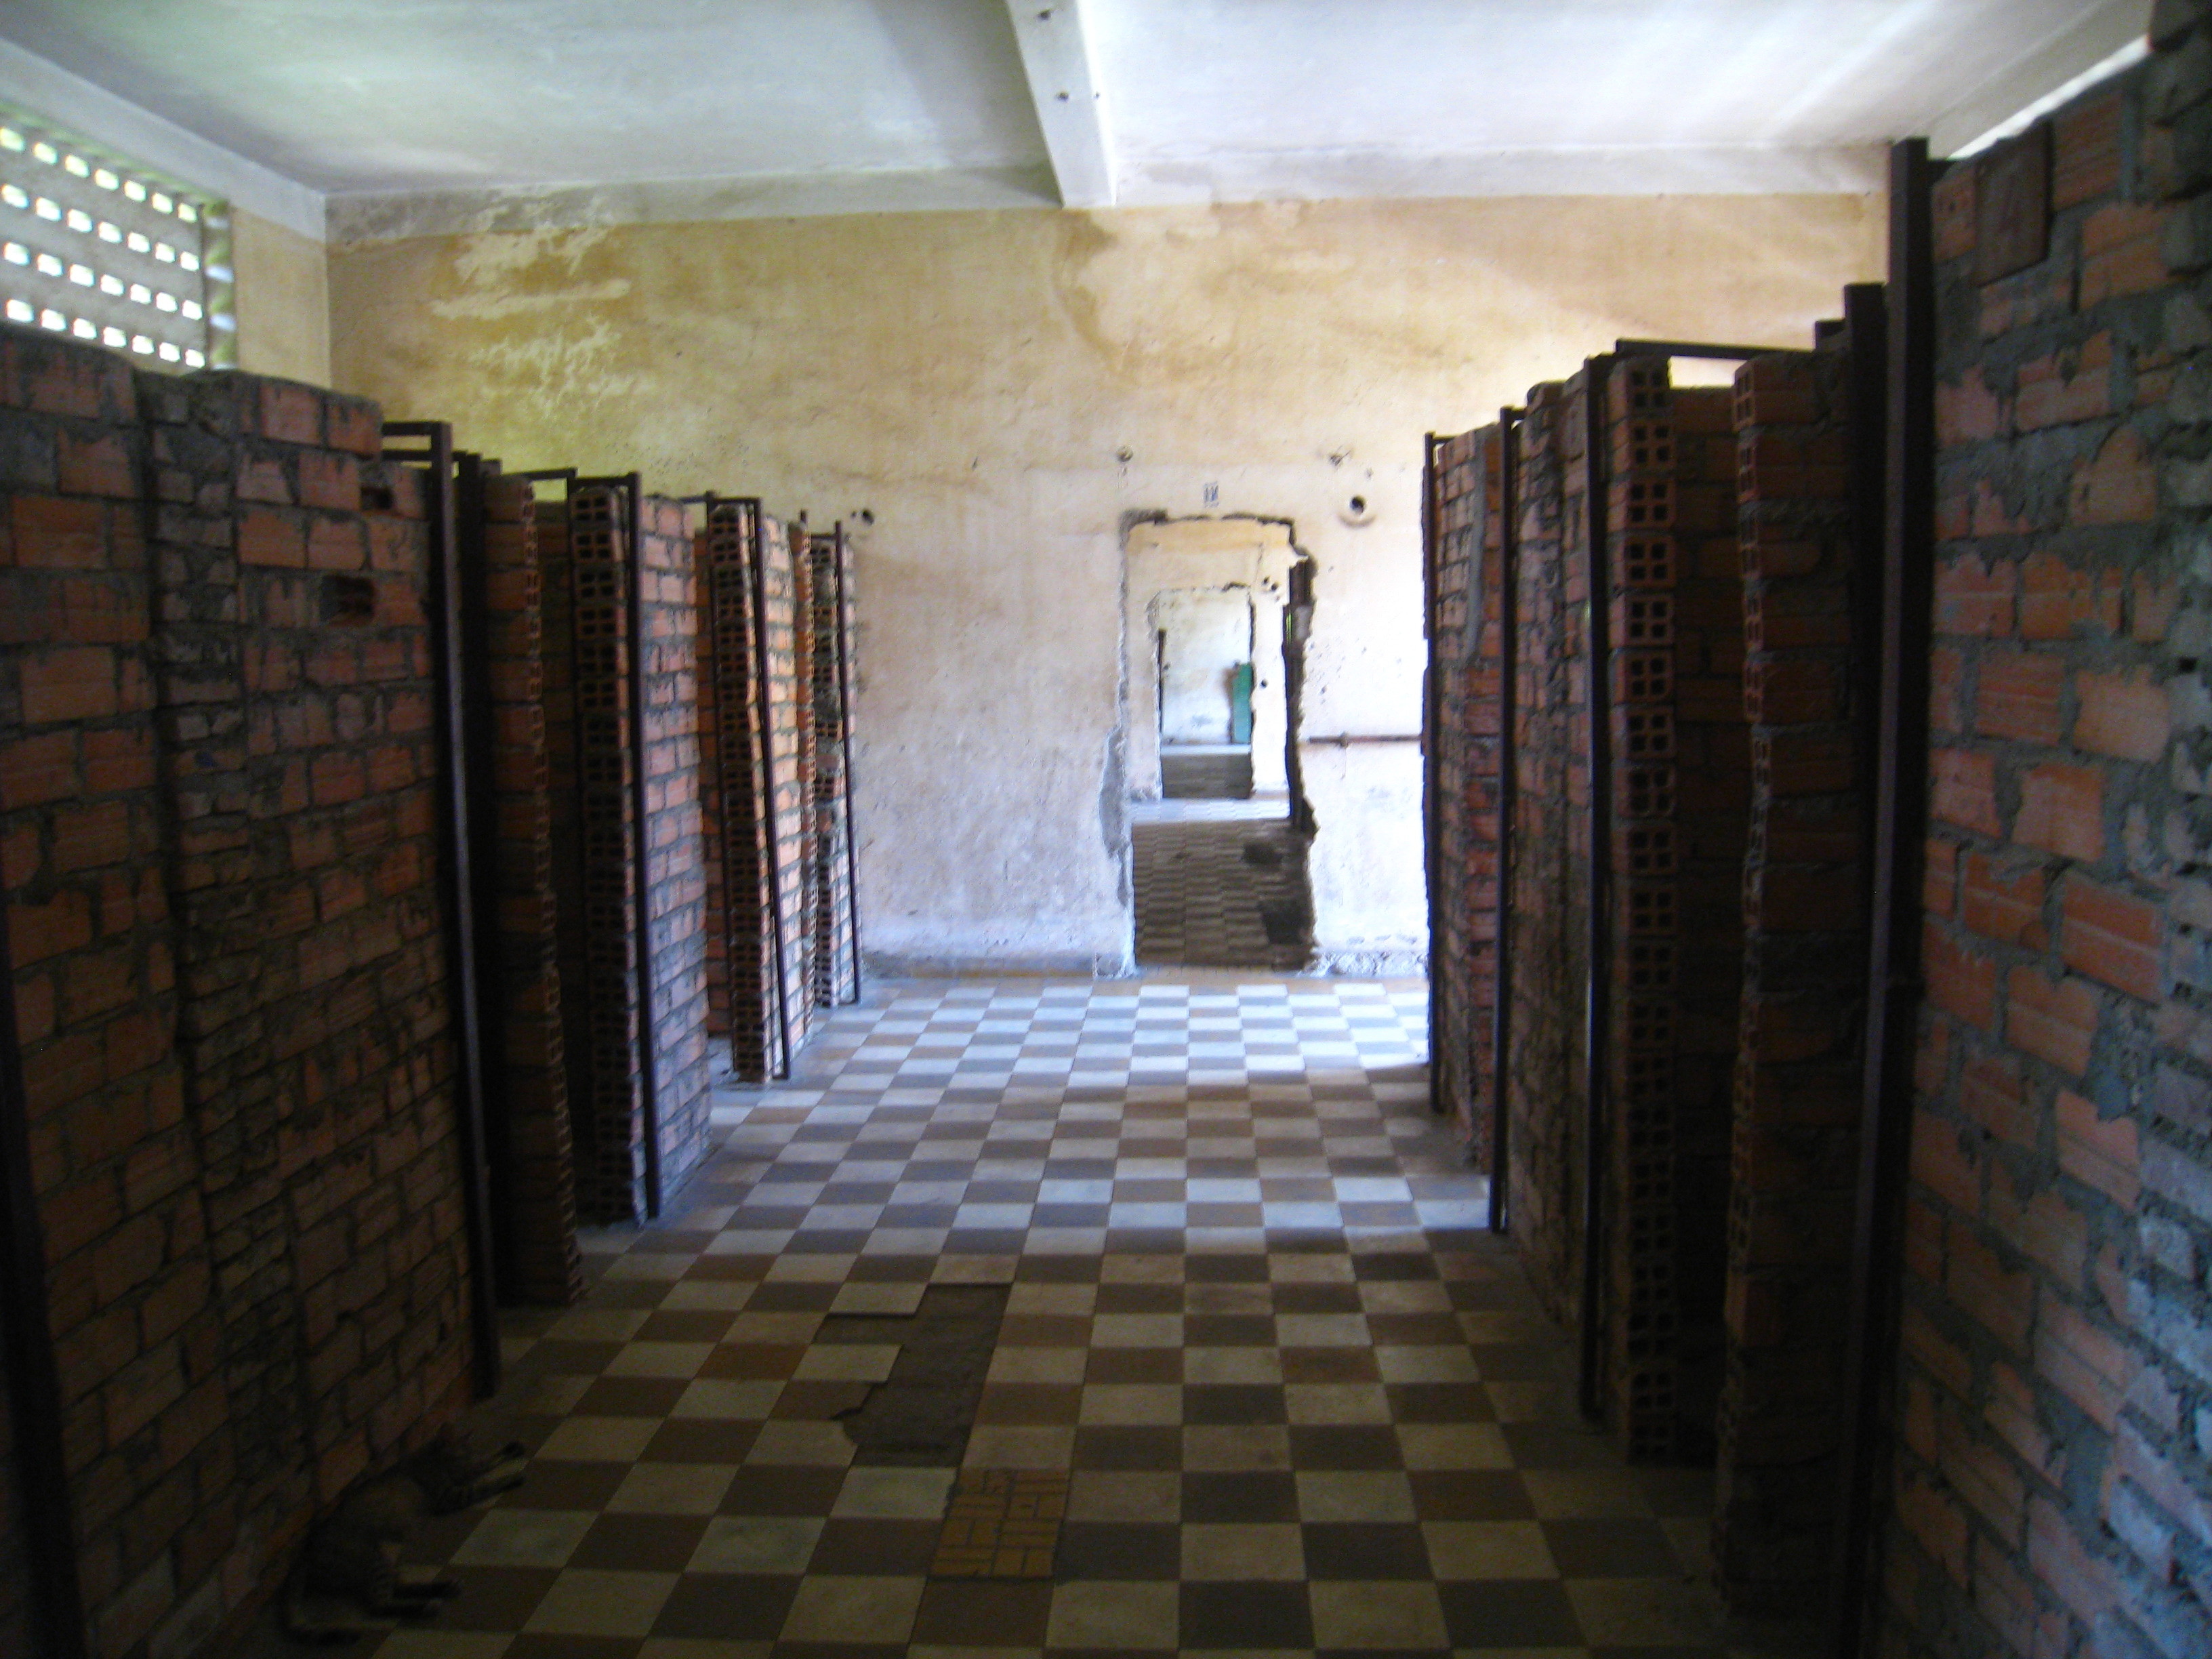 Inside the torture chambers